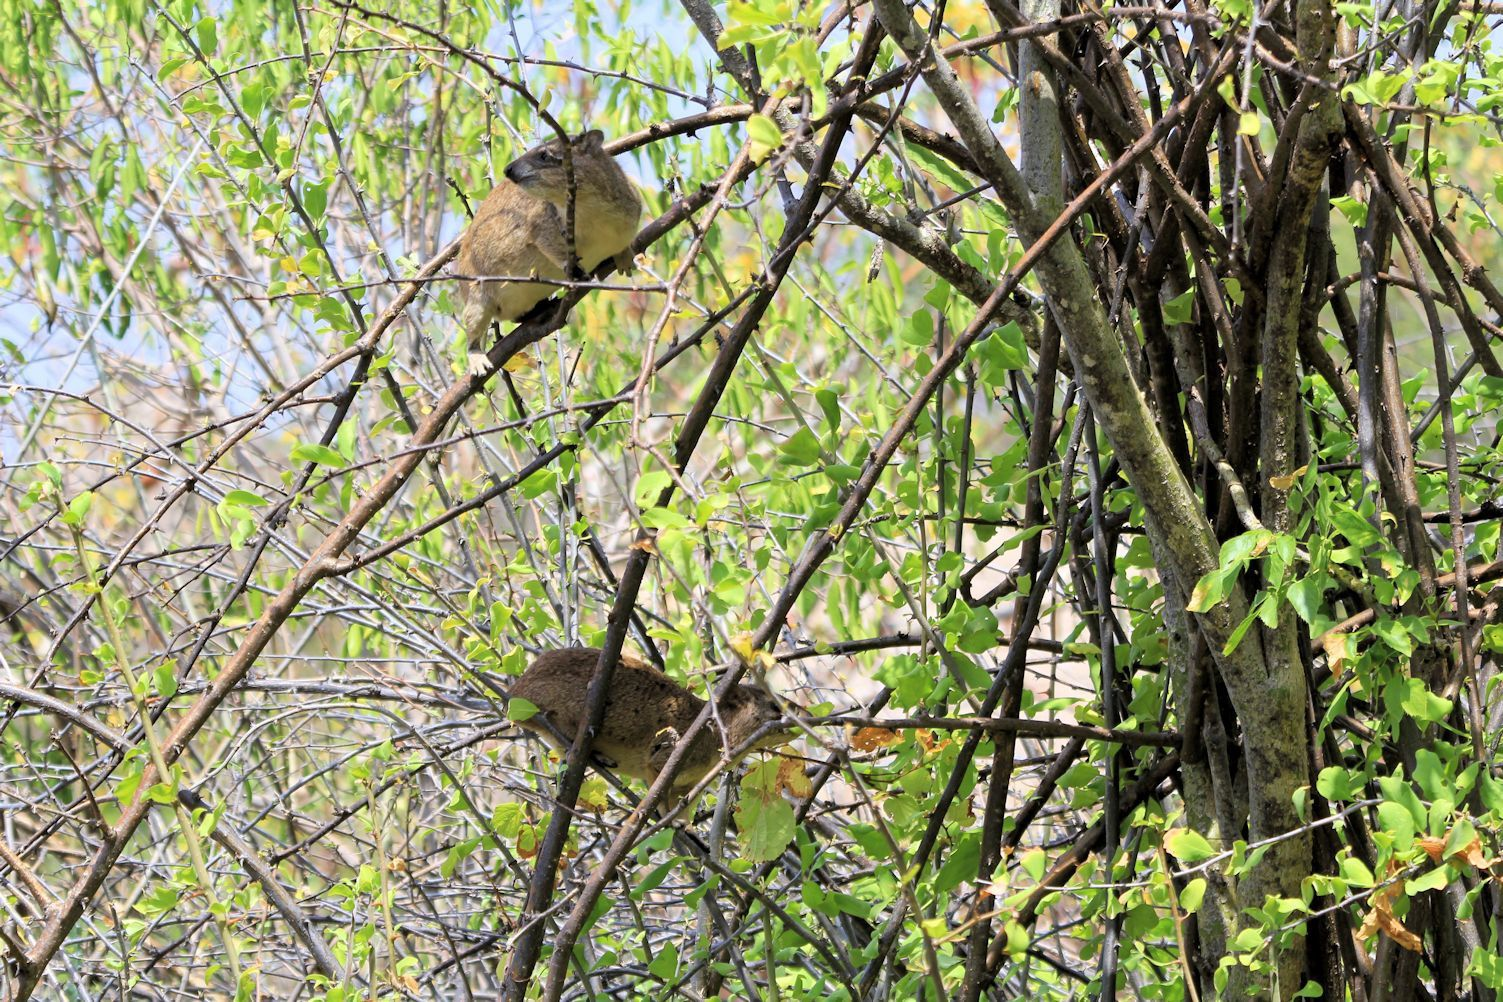 Hyraxes on a tree